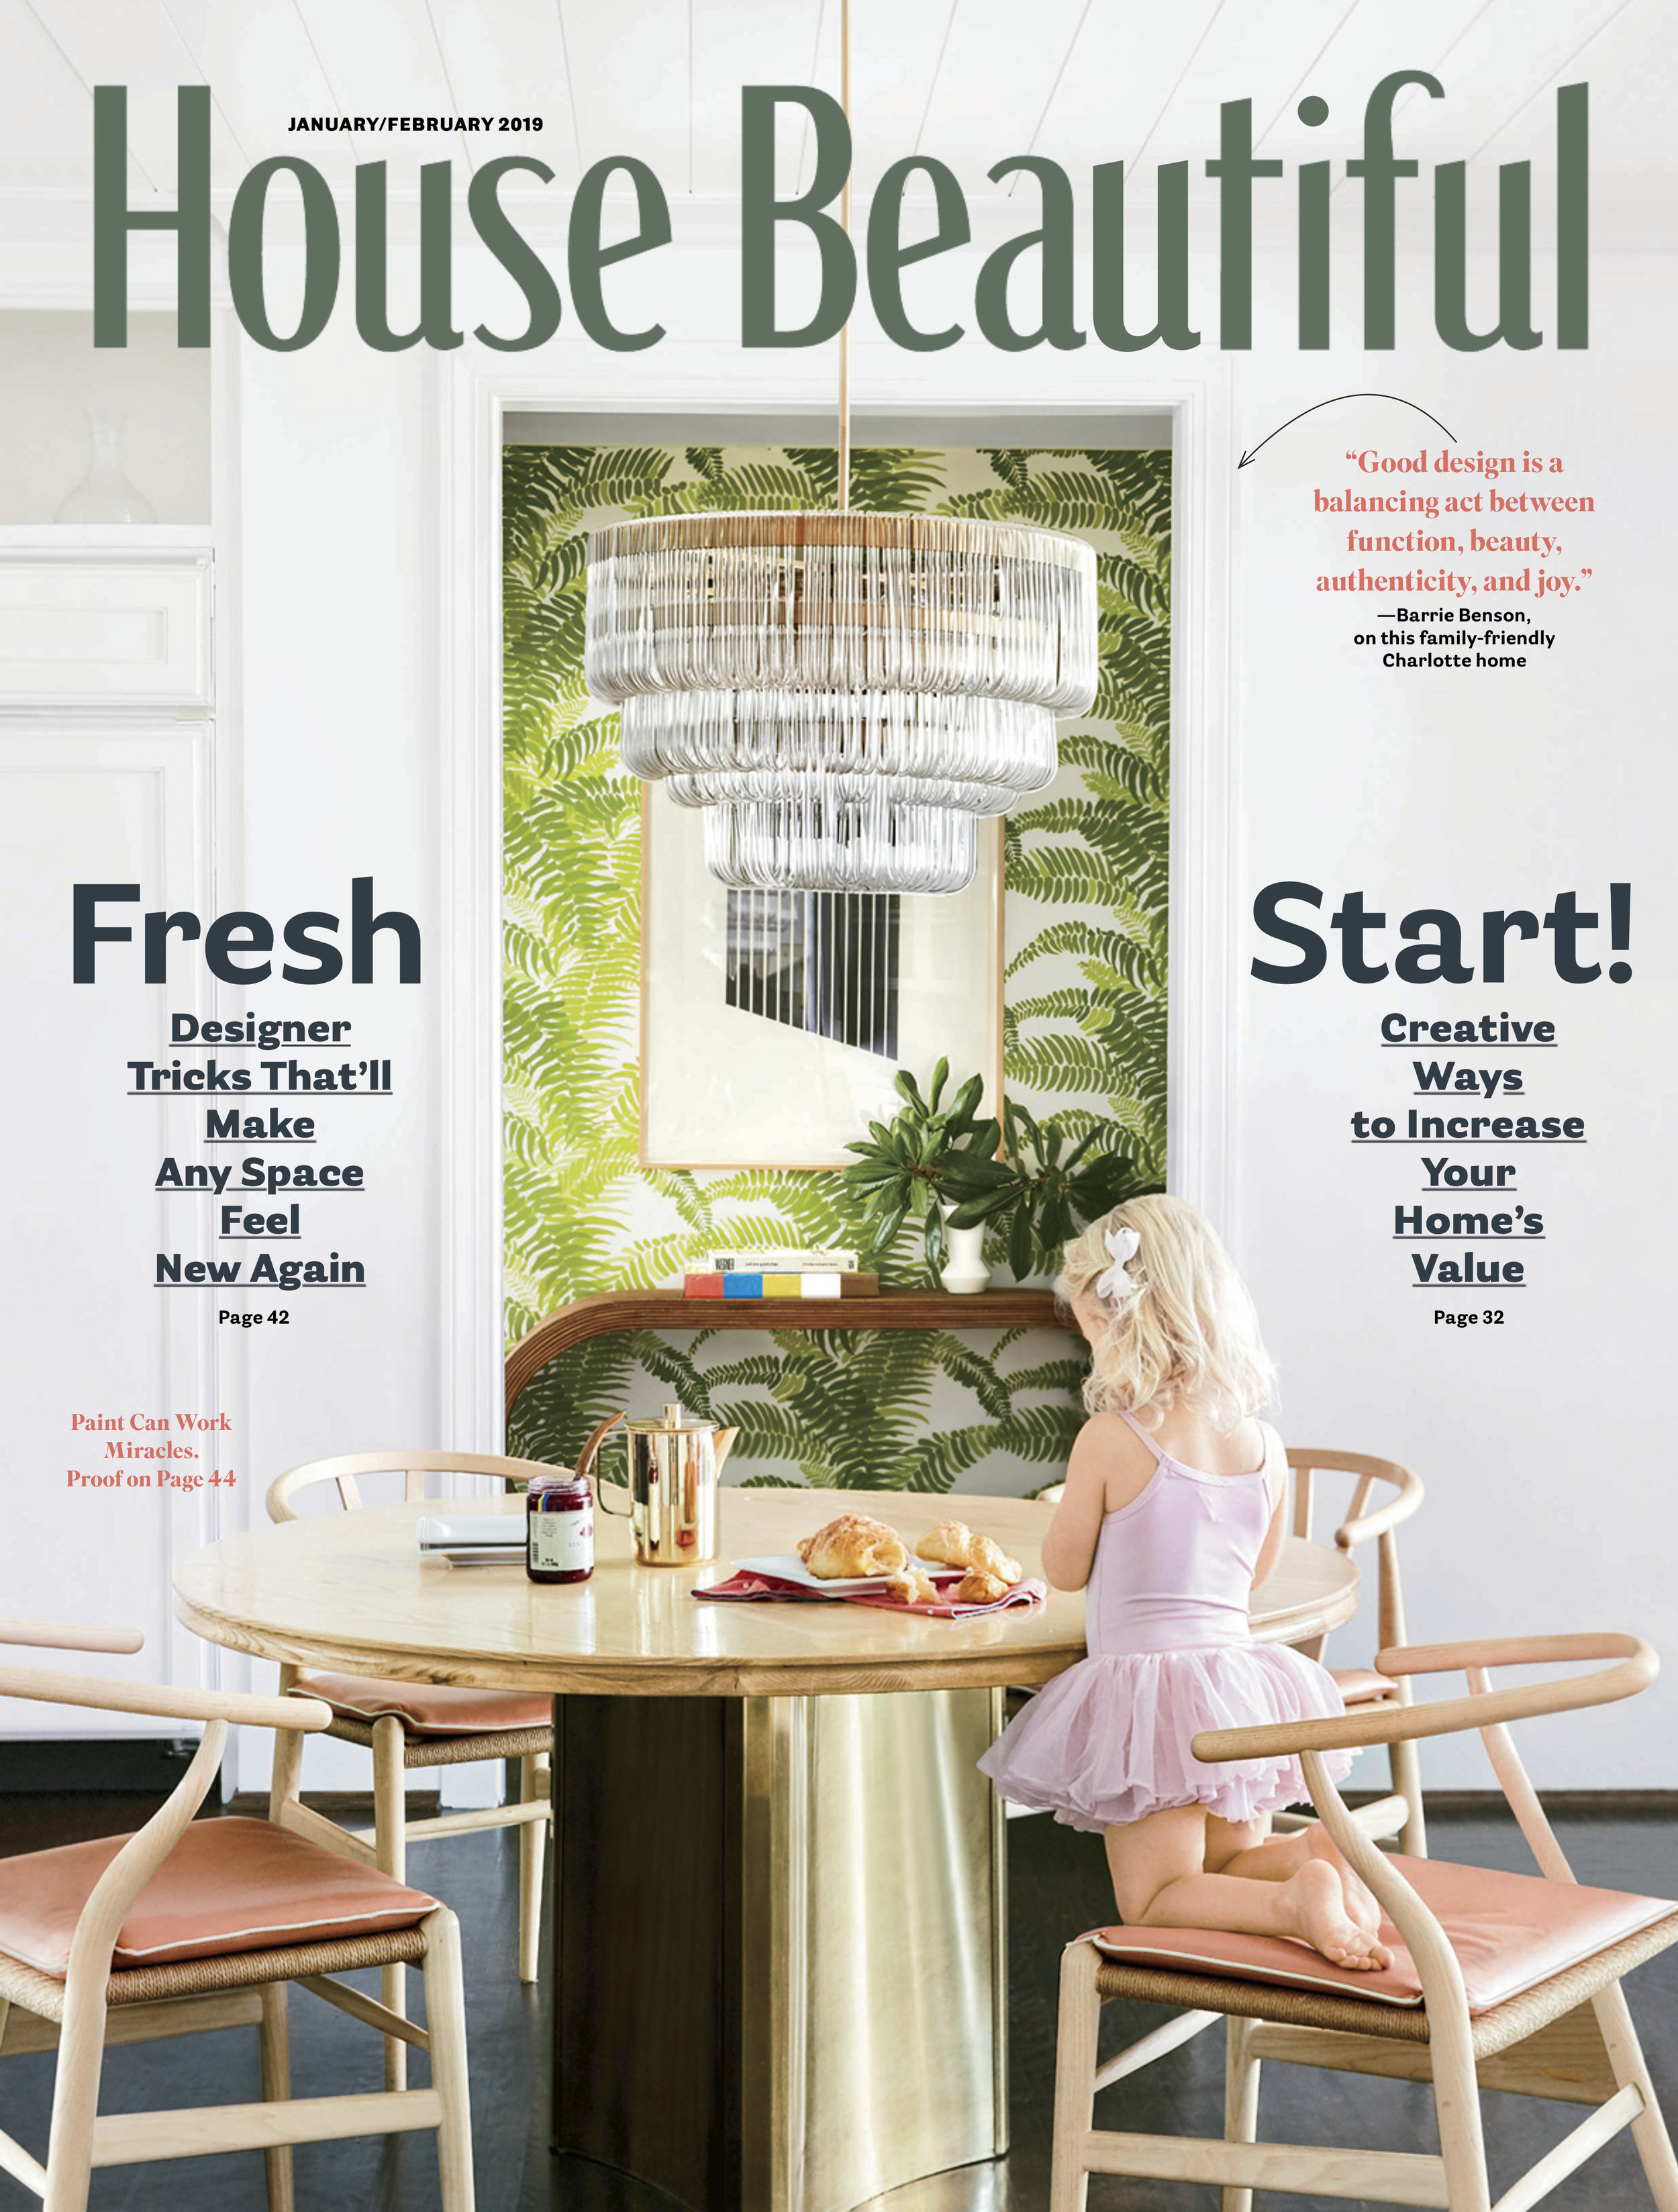 House Beautiful January/February 2019 cover featuring Meg Braff Designs Wallpaper